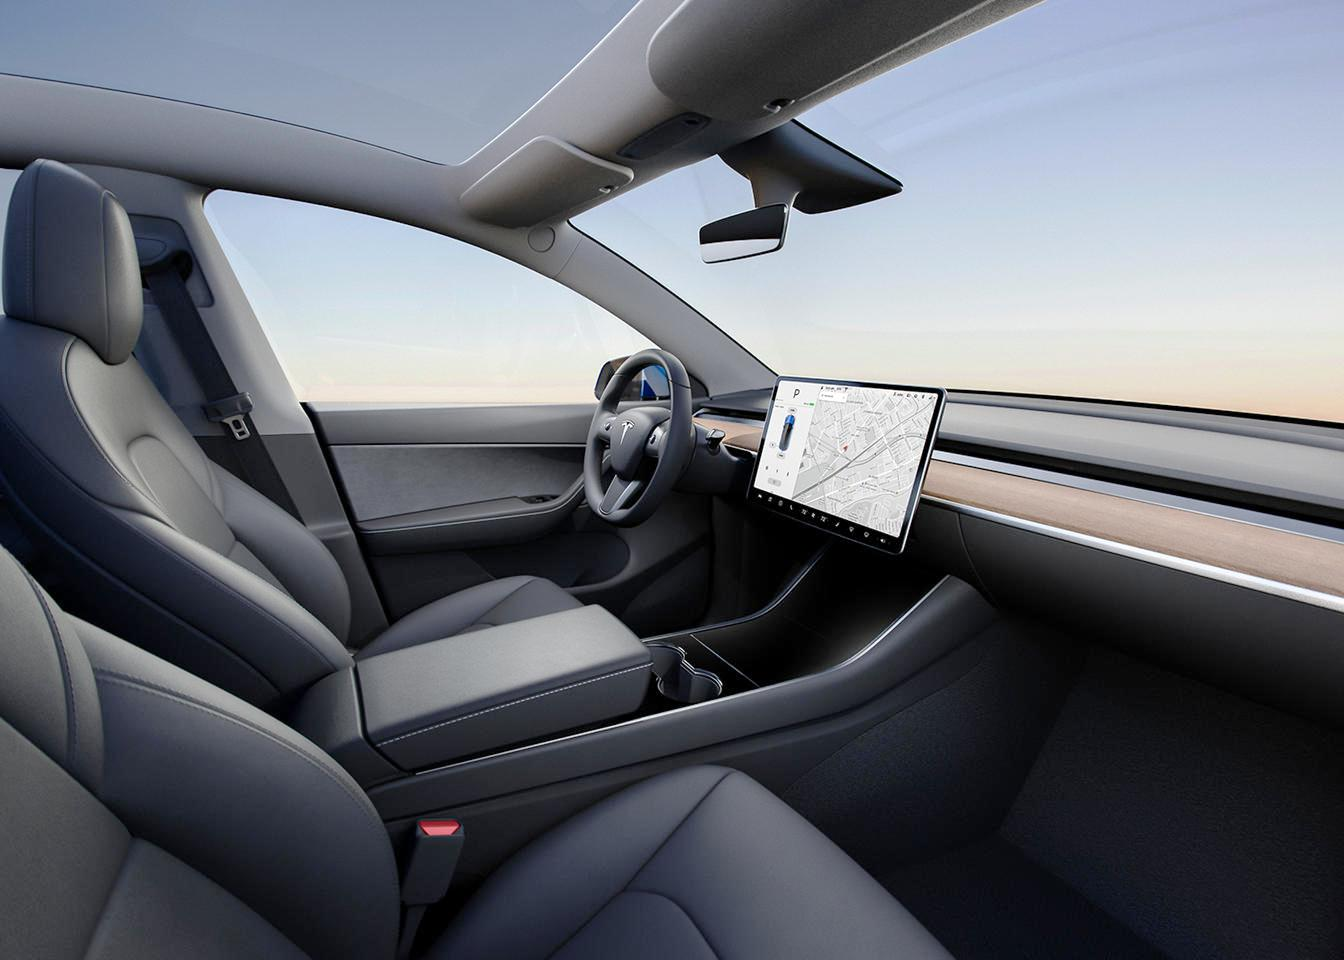 2021 Tesla Model Y Interior Dasboard with sleek and elegant Design